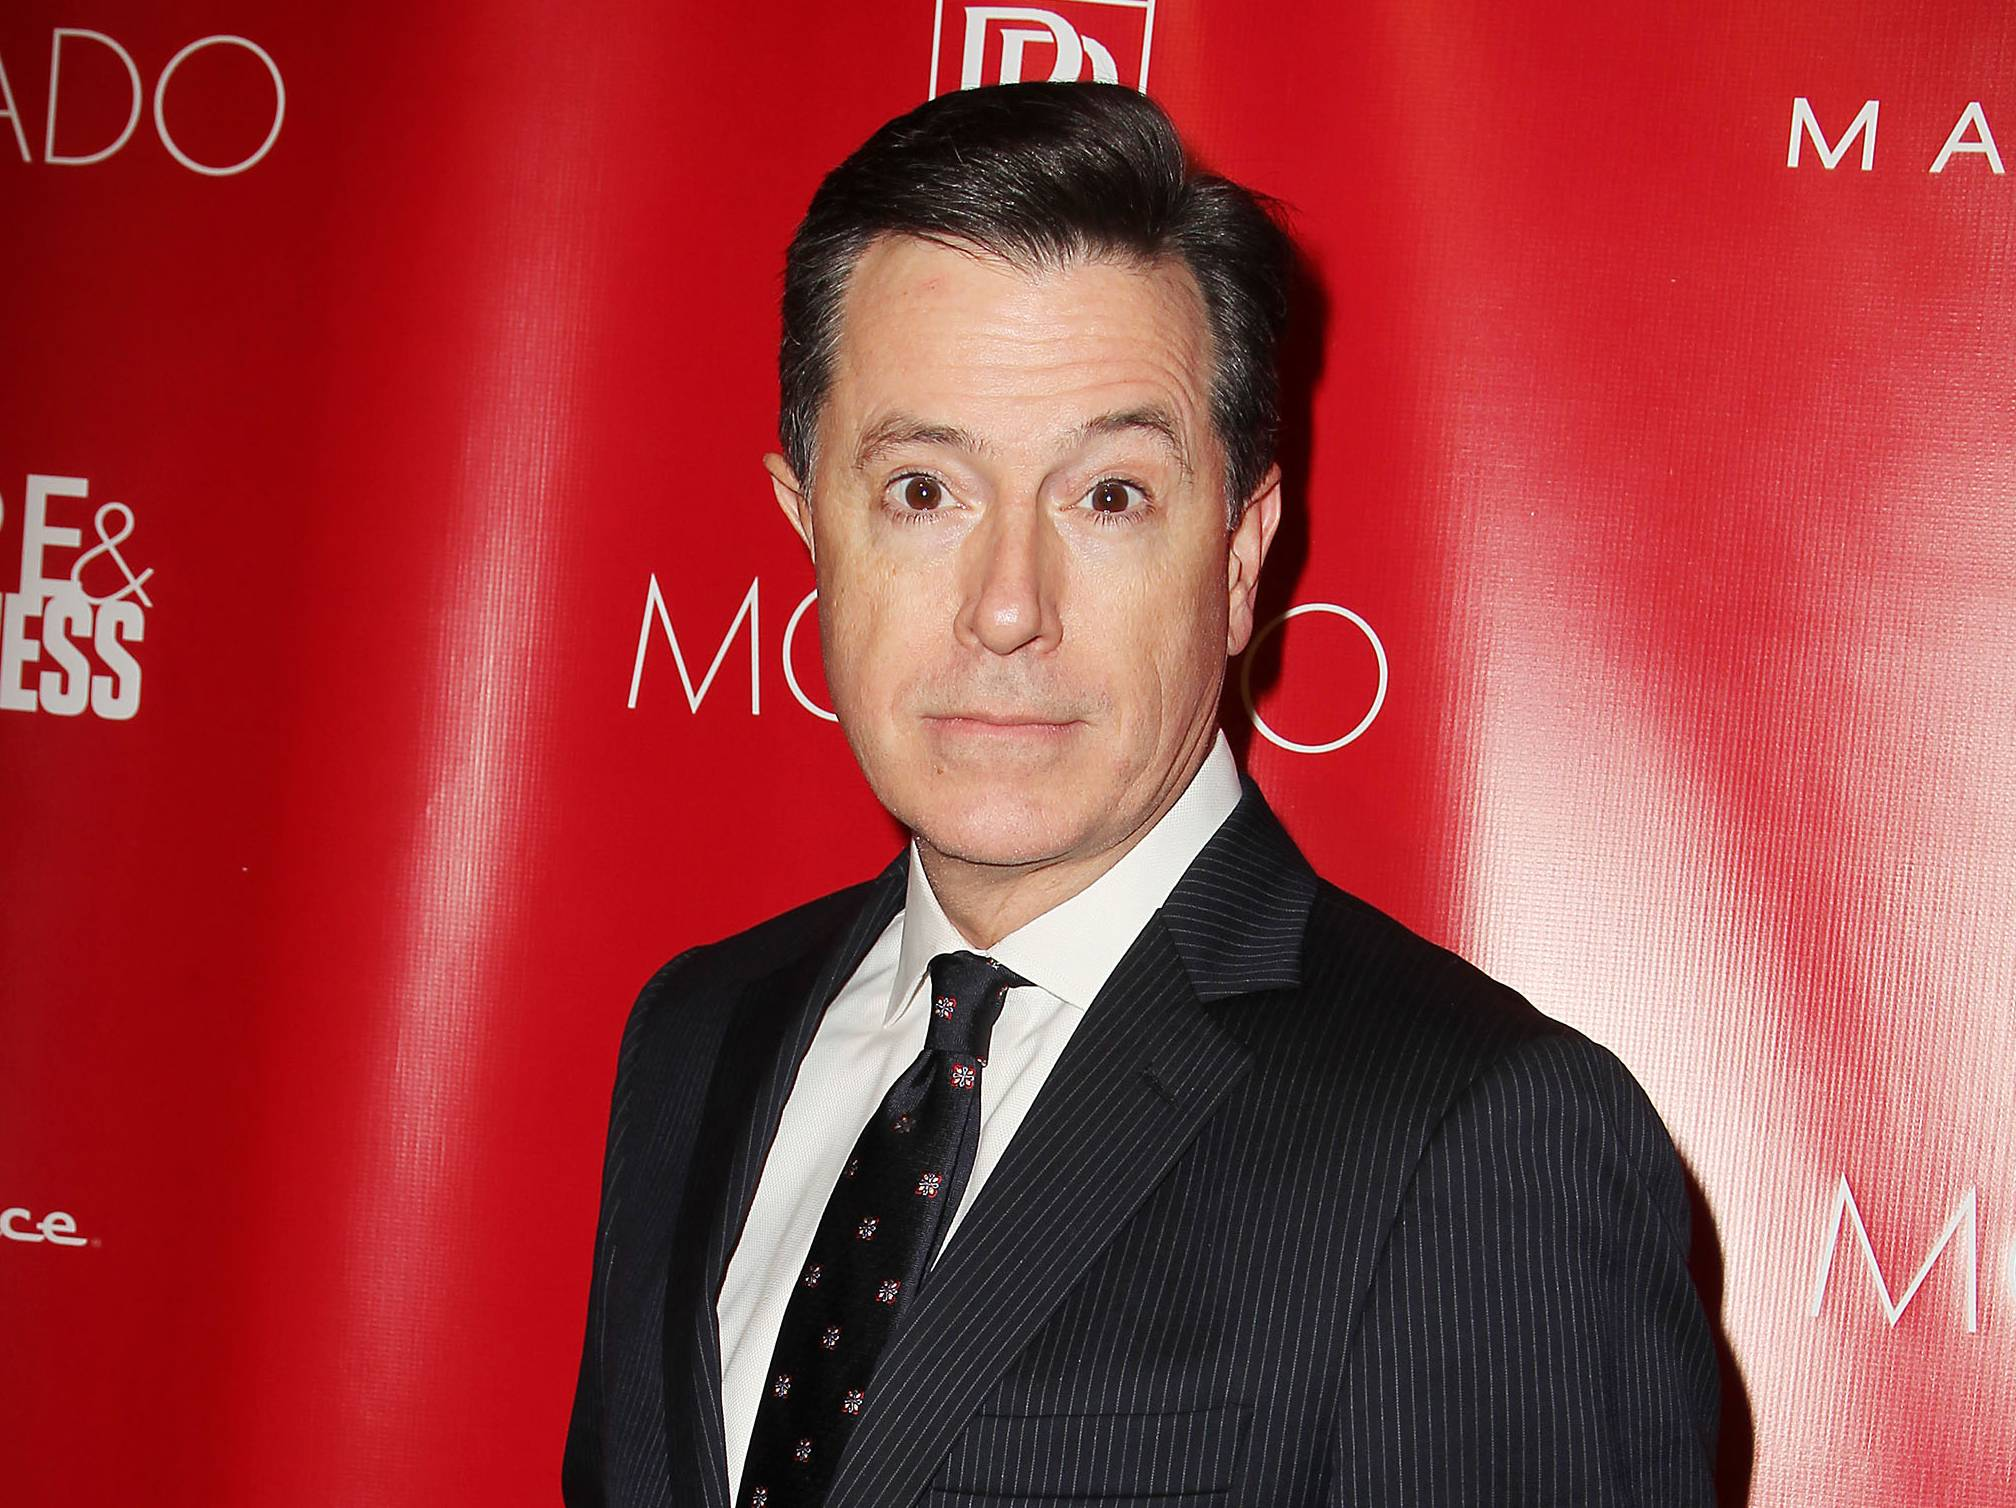 "This Jan. 31, 2014 file image released by Starpix shows Stephen Colbert at the Shape Magazine and Men's Fitness Super Bowl Party in New York. Colbert assailed Amazon.com on his Comedy Central program Wednesday, June 4. Amazon.com is in a contract dispute with Hachette Book Group and has been delaying shipments for some Hachette books, including for Colbert's ""America Again."""